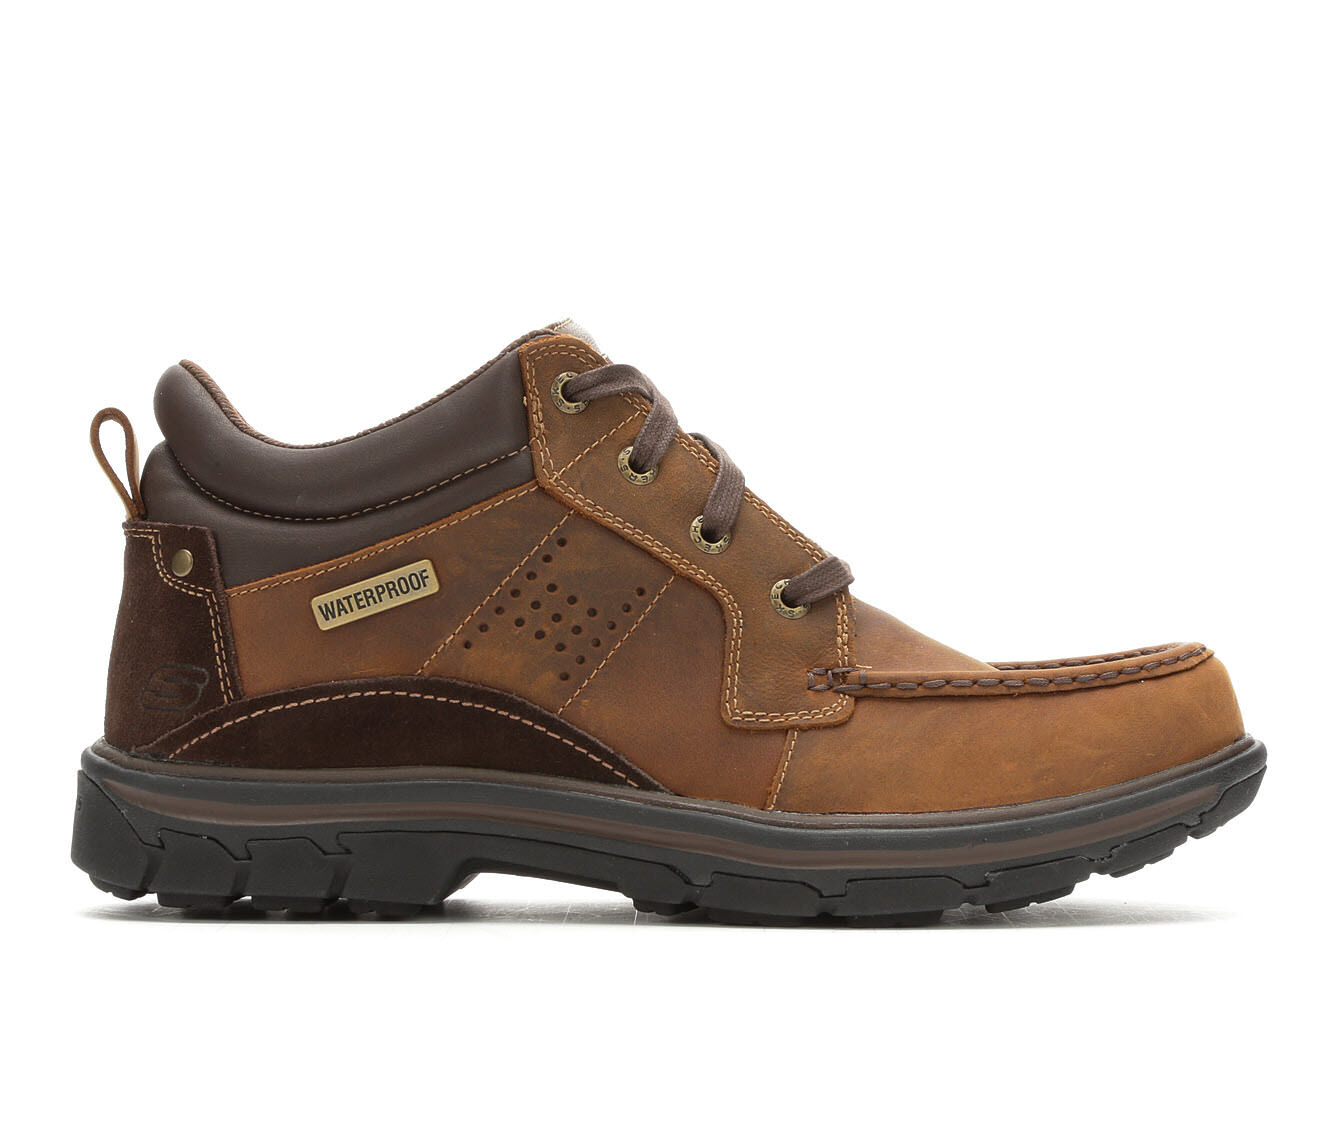 Men's Skechers Melego 64522 Hiking Boots Crazy Horse